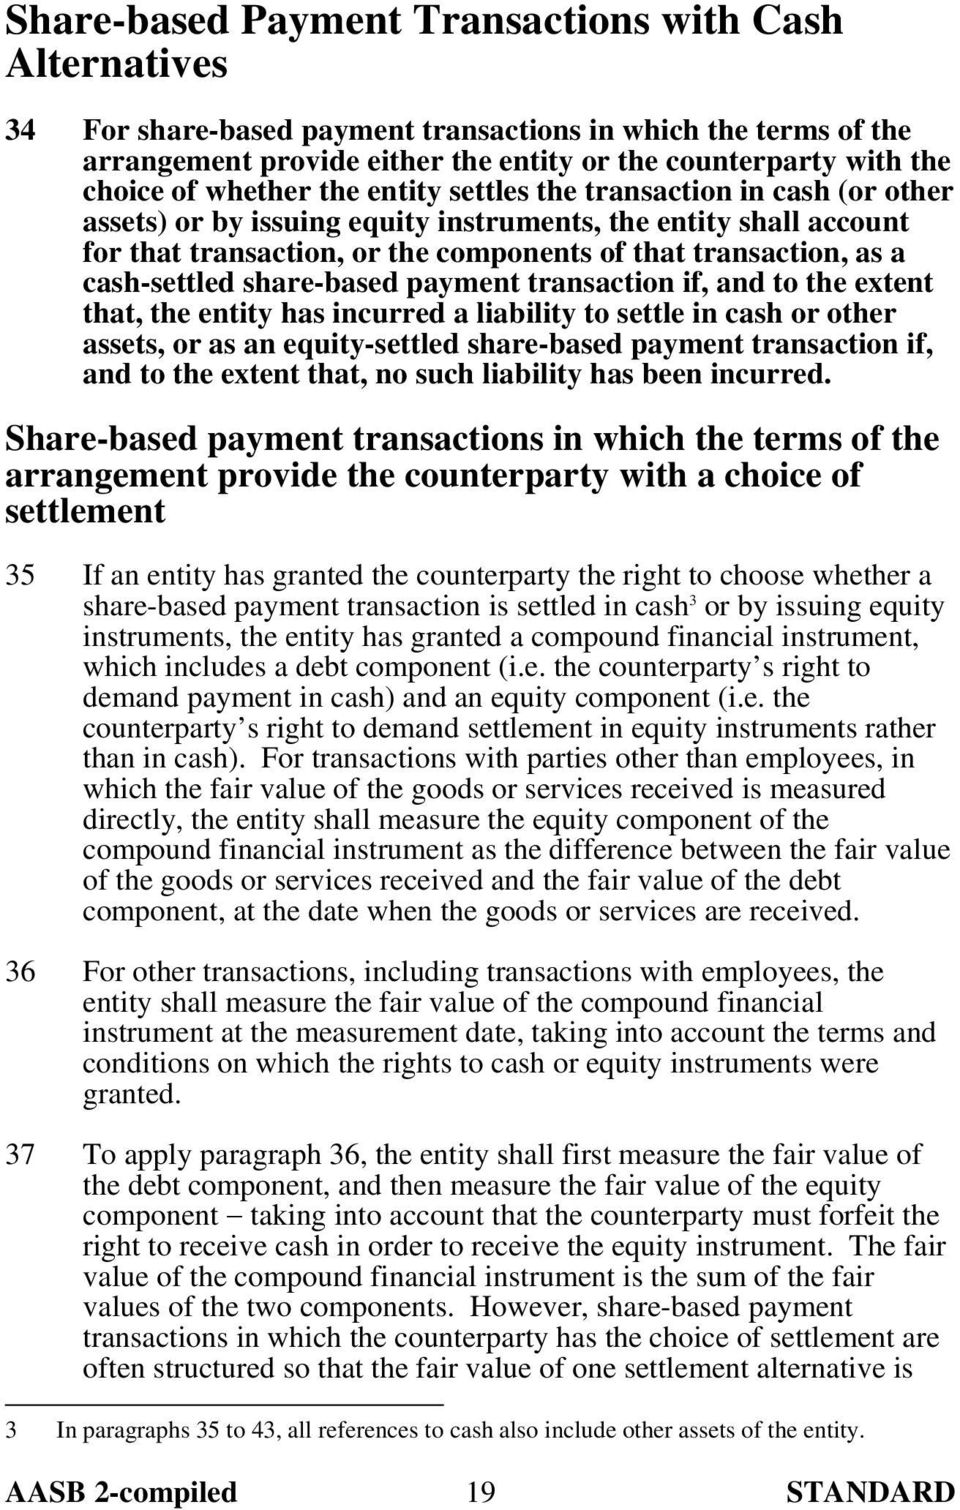 cash-settled share-based payment transaction if, and to the extent that, the entity has incurred a liability to settle in cash or other assets, or as an equity-settled share-based payment transaction